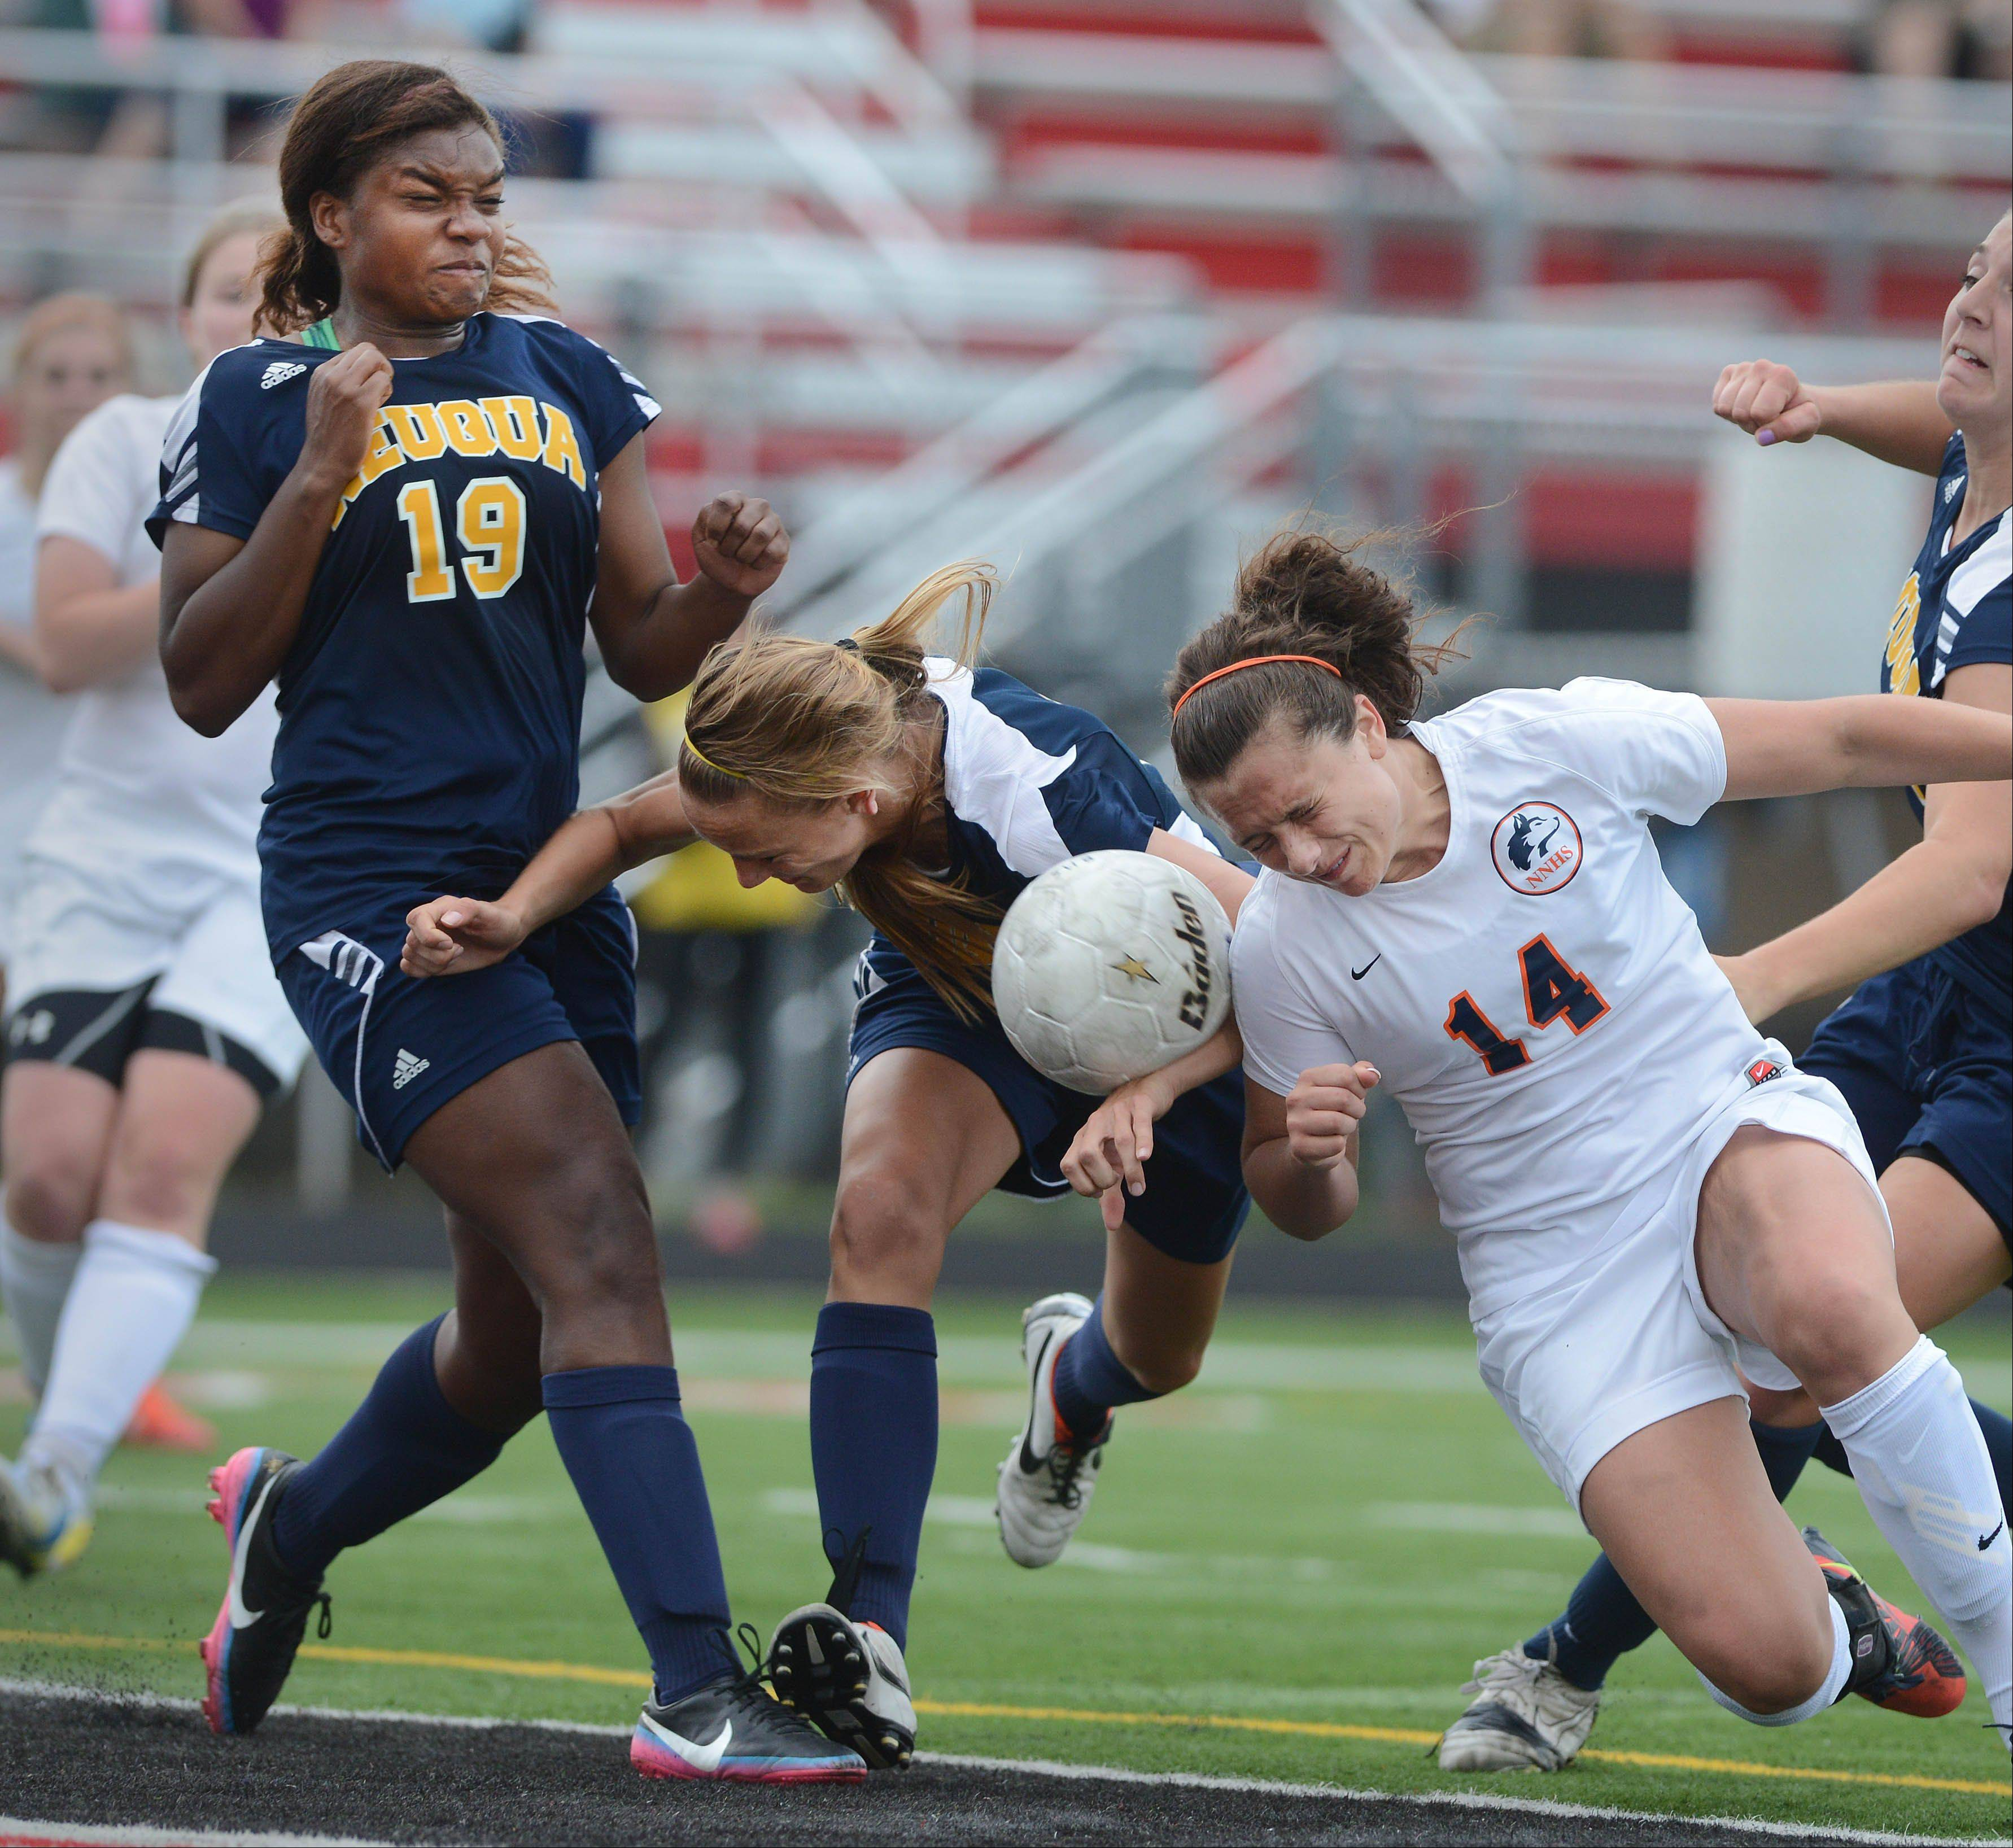 Dannah Williams,left, Gianna Dal Pozzo of Neuqua Valley move in on Christa Szalach of Naperville North during the Class 4A Bolingbrook girls soccer semifinals Wednesday.